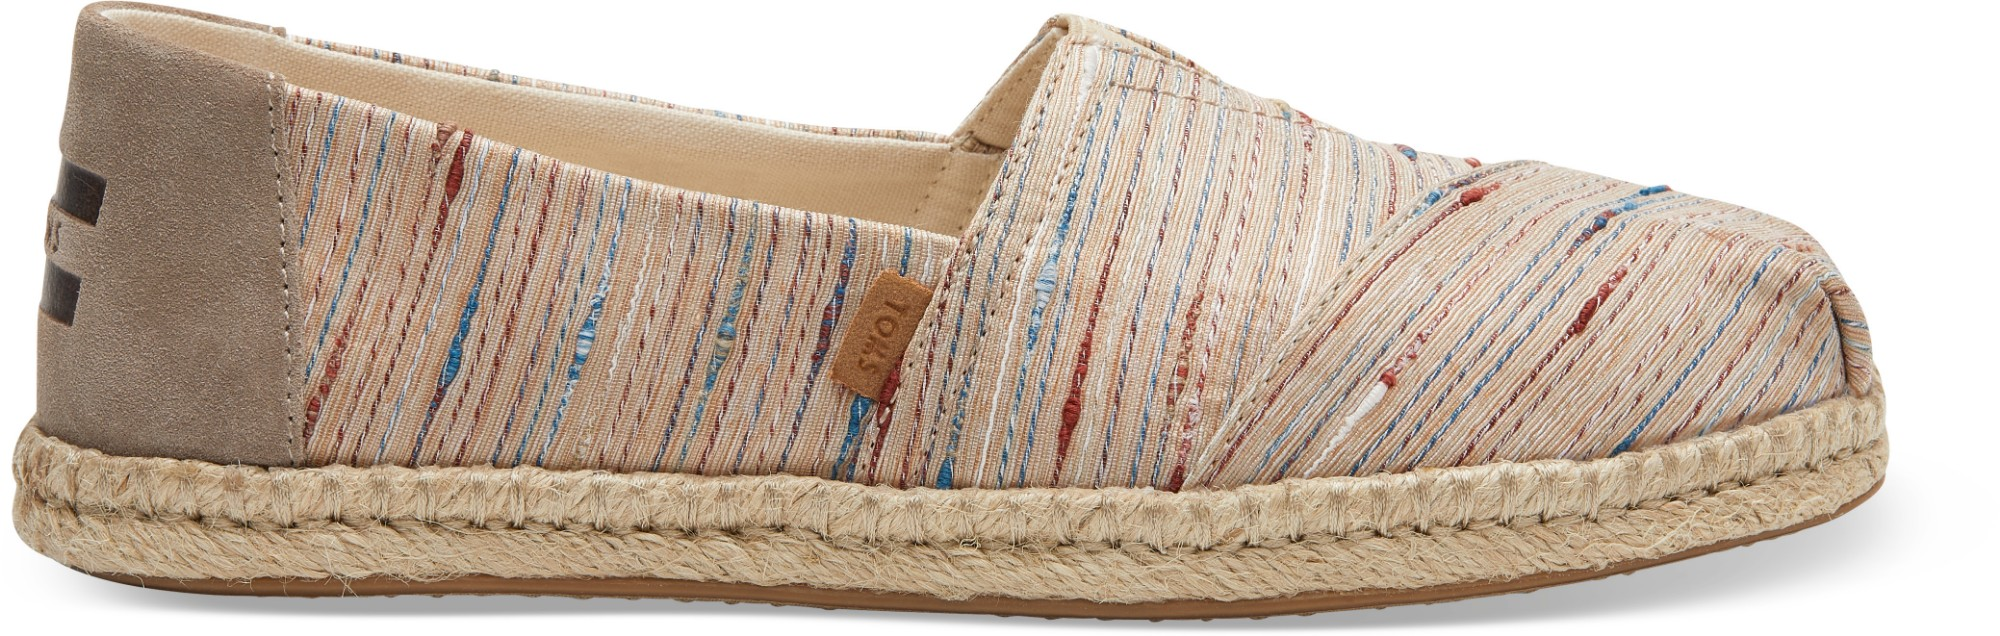 TOMS Slub Stripe on Rope Women's Alpargata Metallic 41